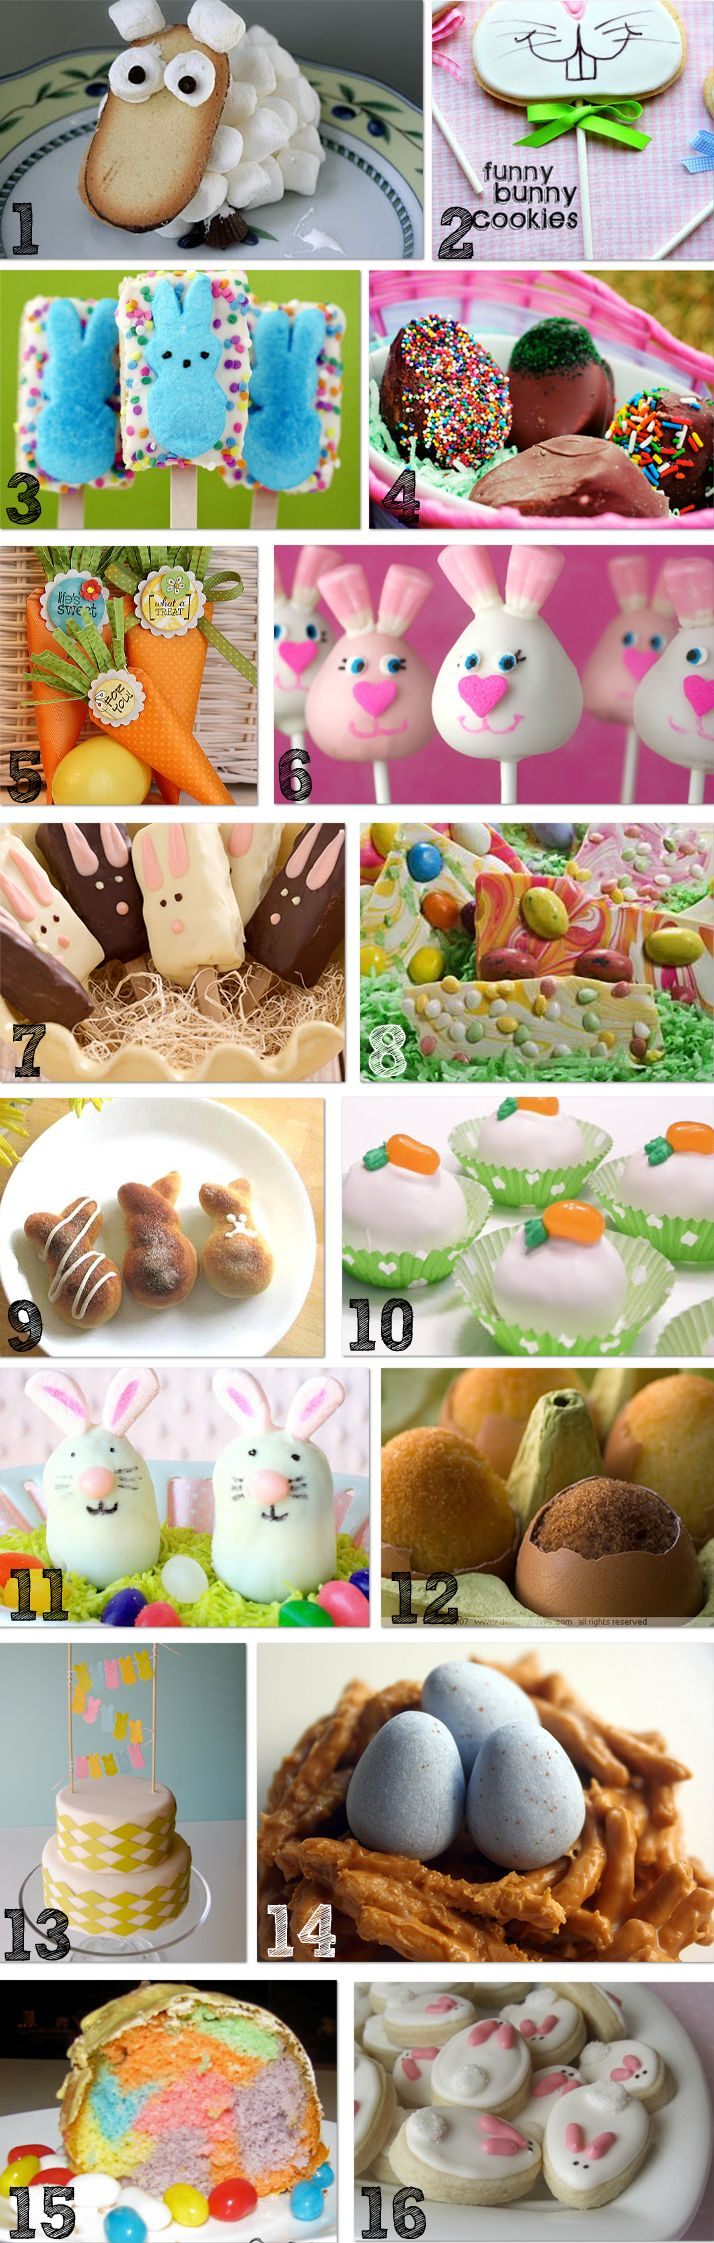 Cute Easter treats with links to recipes easter